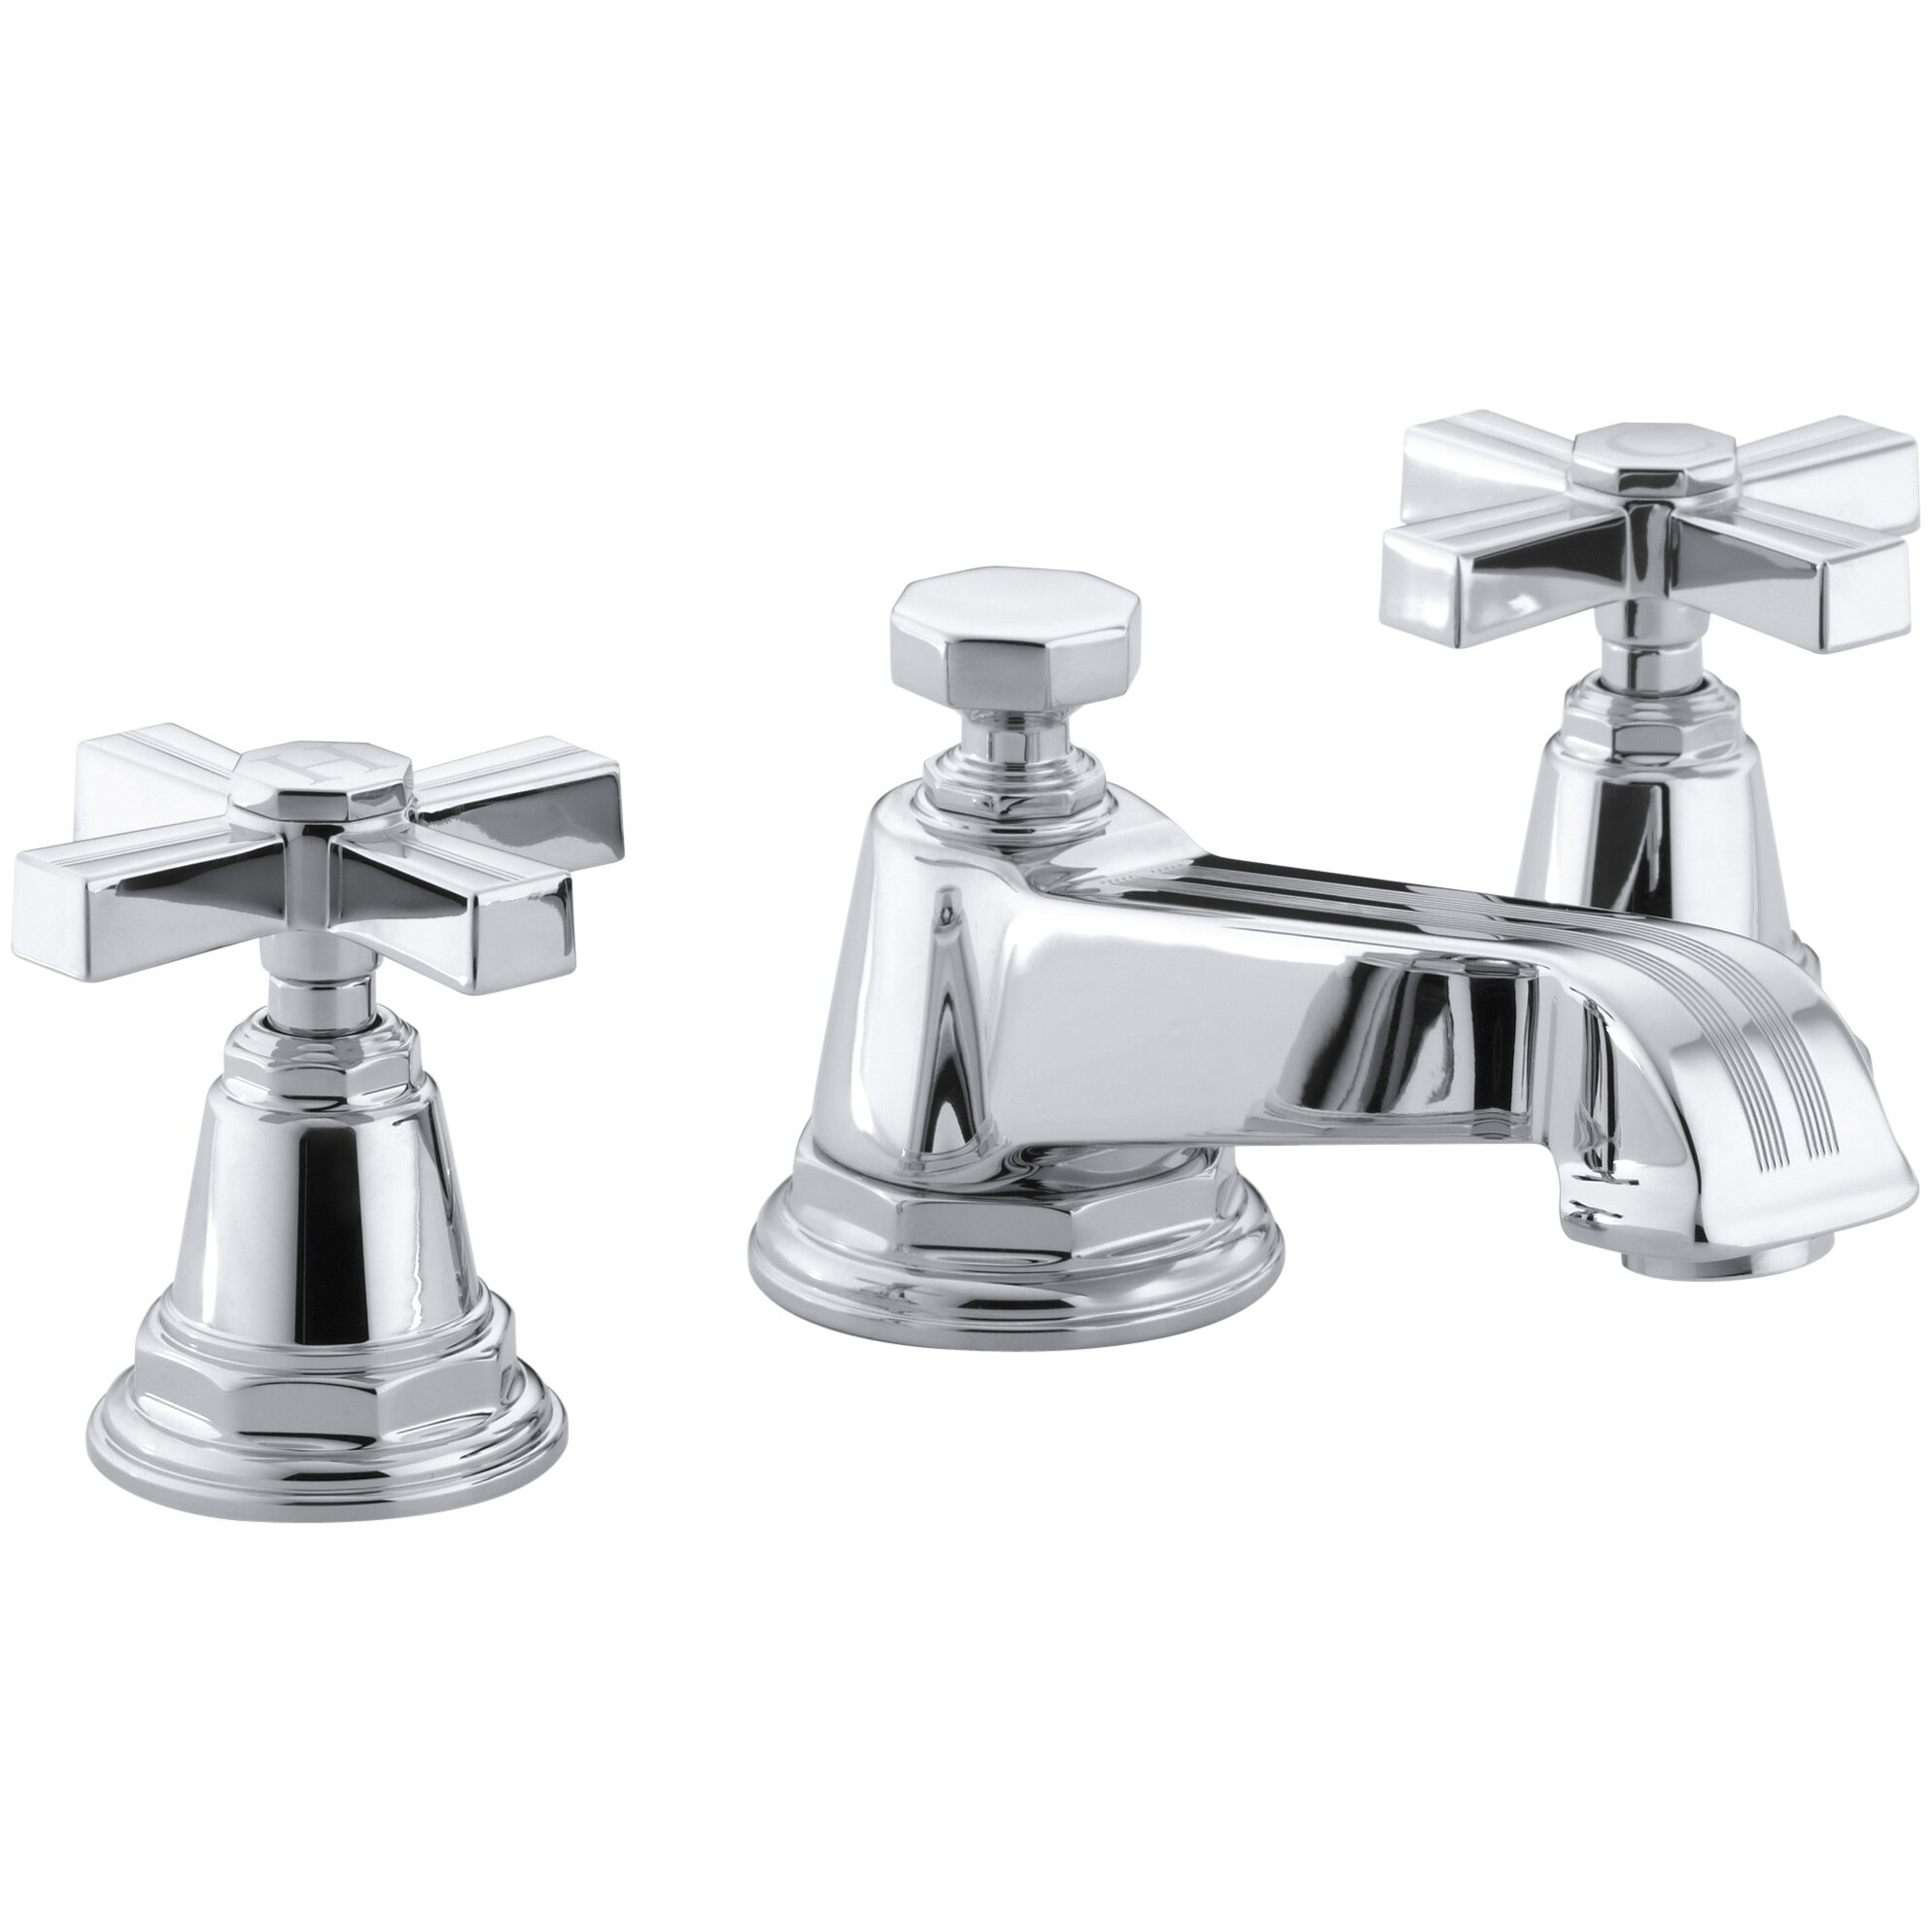 of htsrec with sink kohler faucet wall memoirs bathroom mount mercial luxury photos com faucets